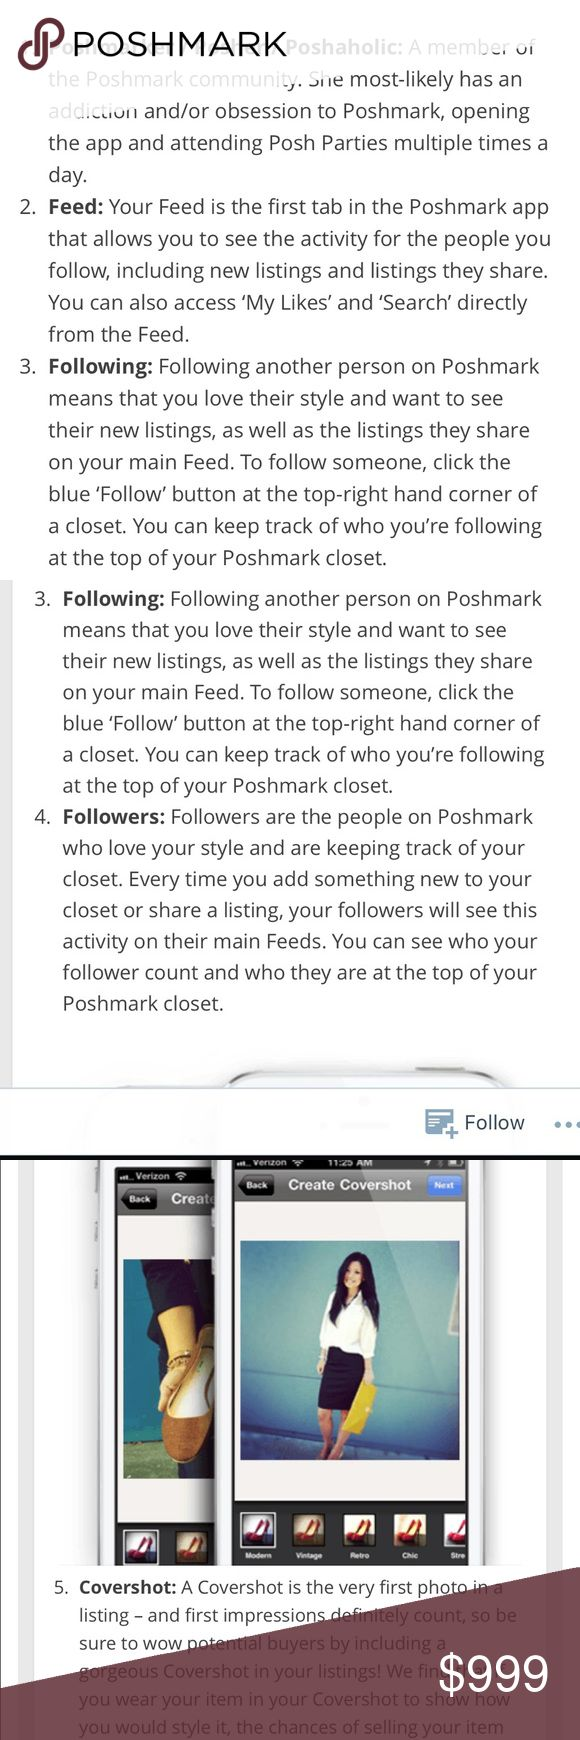 COMMON POSH WORDS USED Poshmarker / Posher / Poshaholic: A member of the Poshmark community. She most-likely has an addiction and/or obsession to Poshmark, opening the app and attending Posh Parties Other